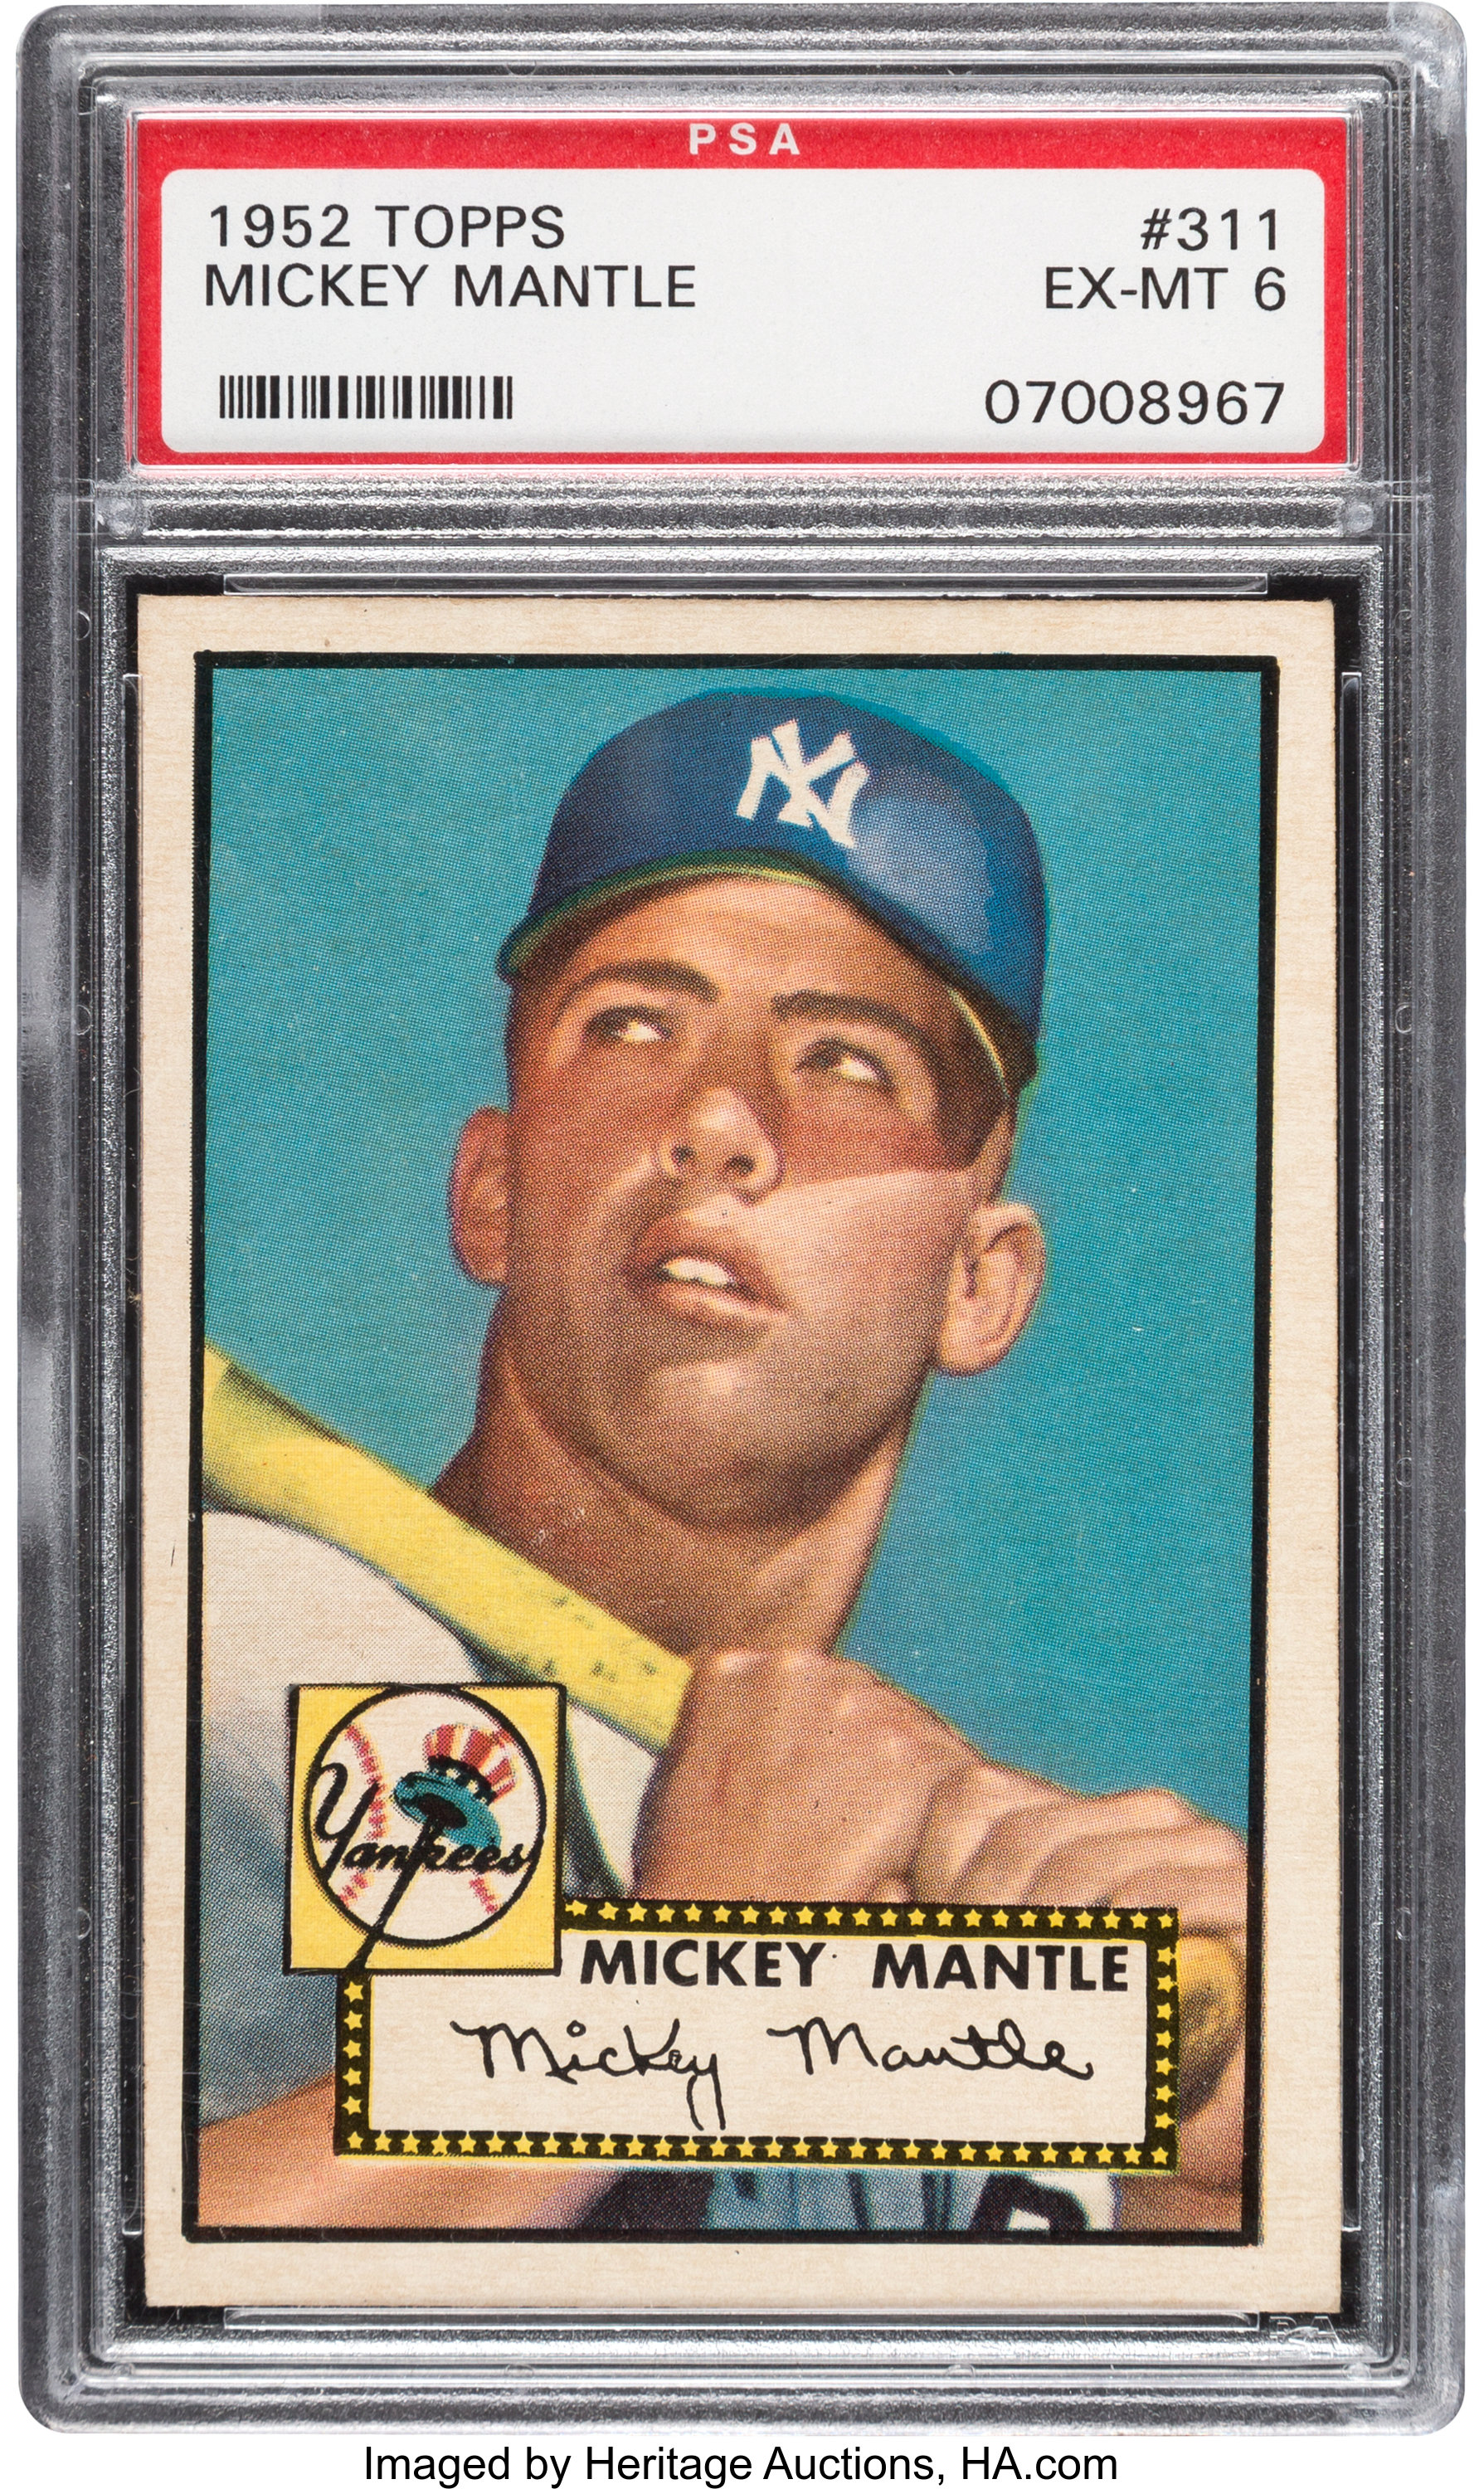 1952 Topps Mickey Mantle 311 Psa Ex Mt 6 Baseball Cards Lot